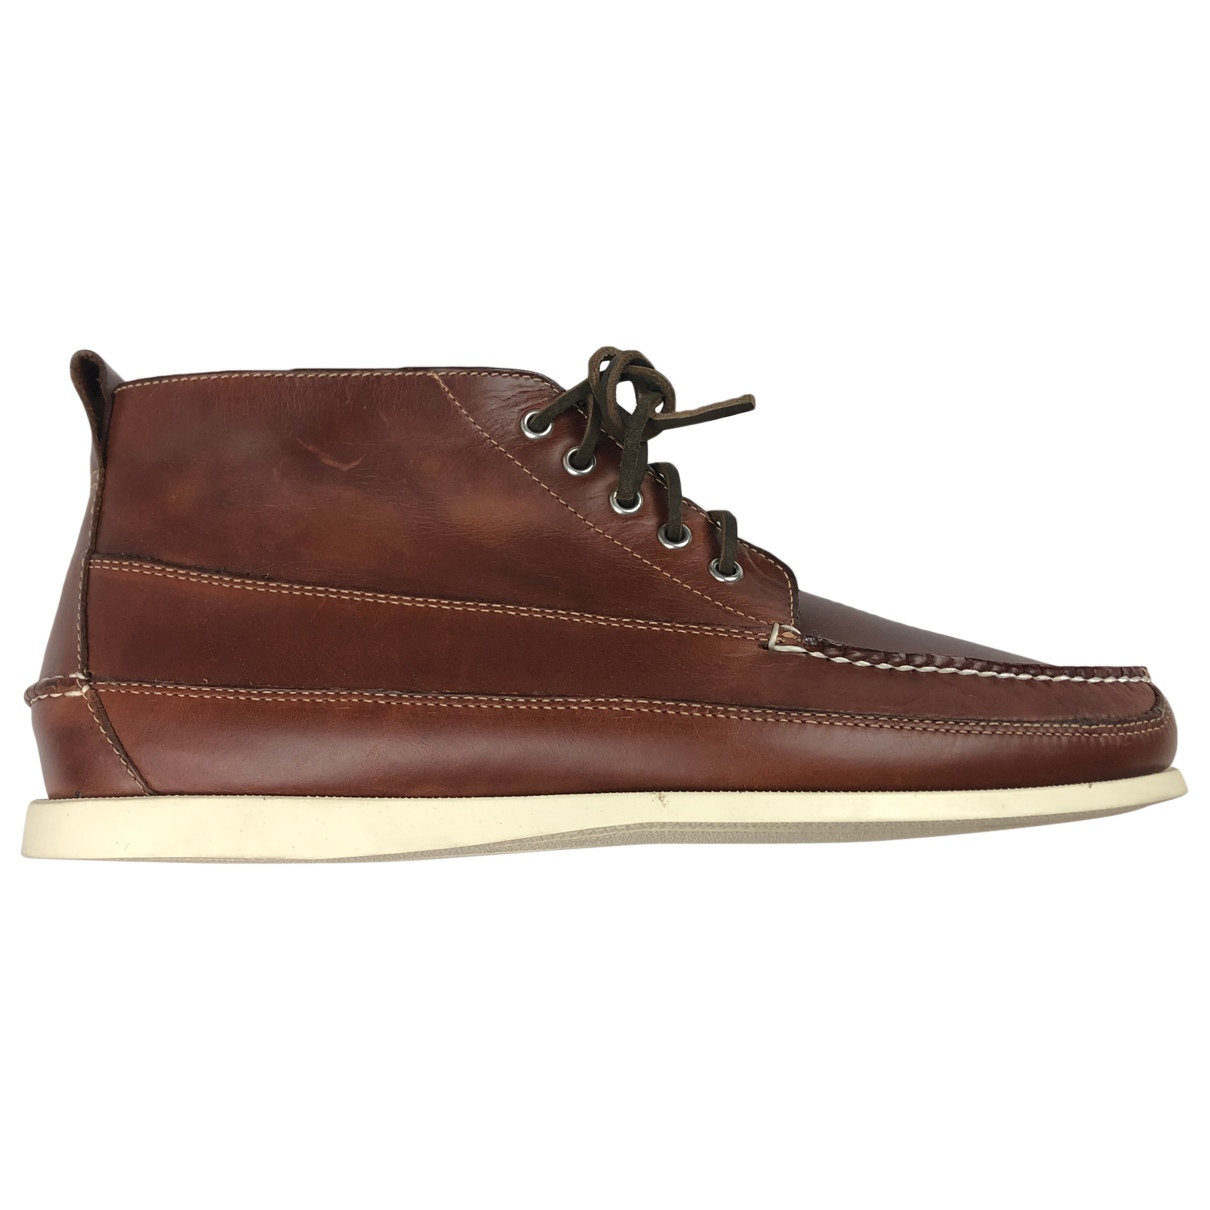 Bass Weejun N Brown Leather Boots for Men 45 EU